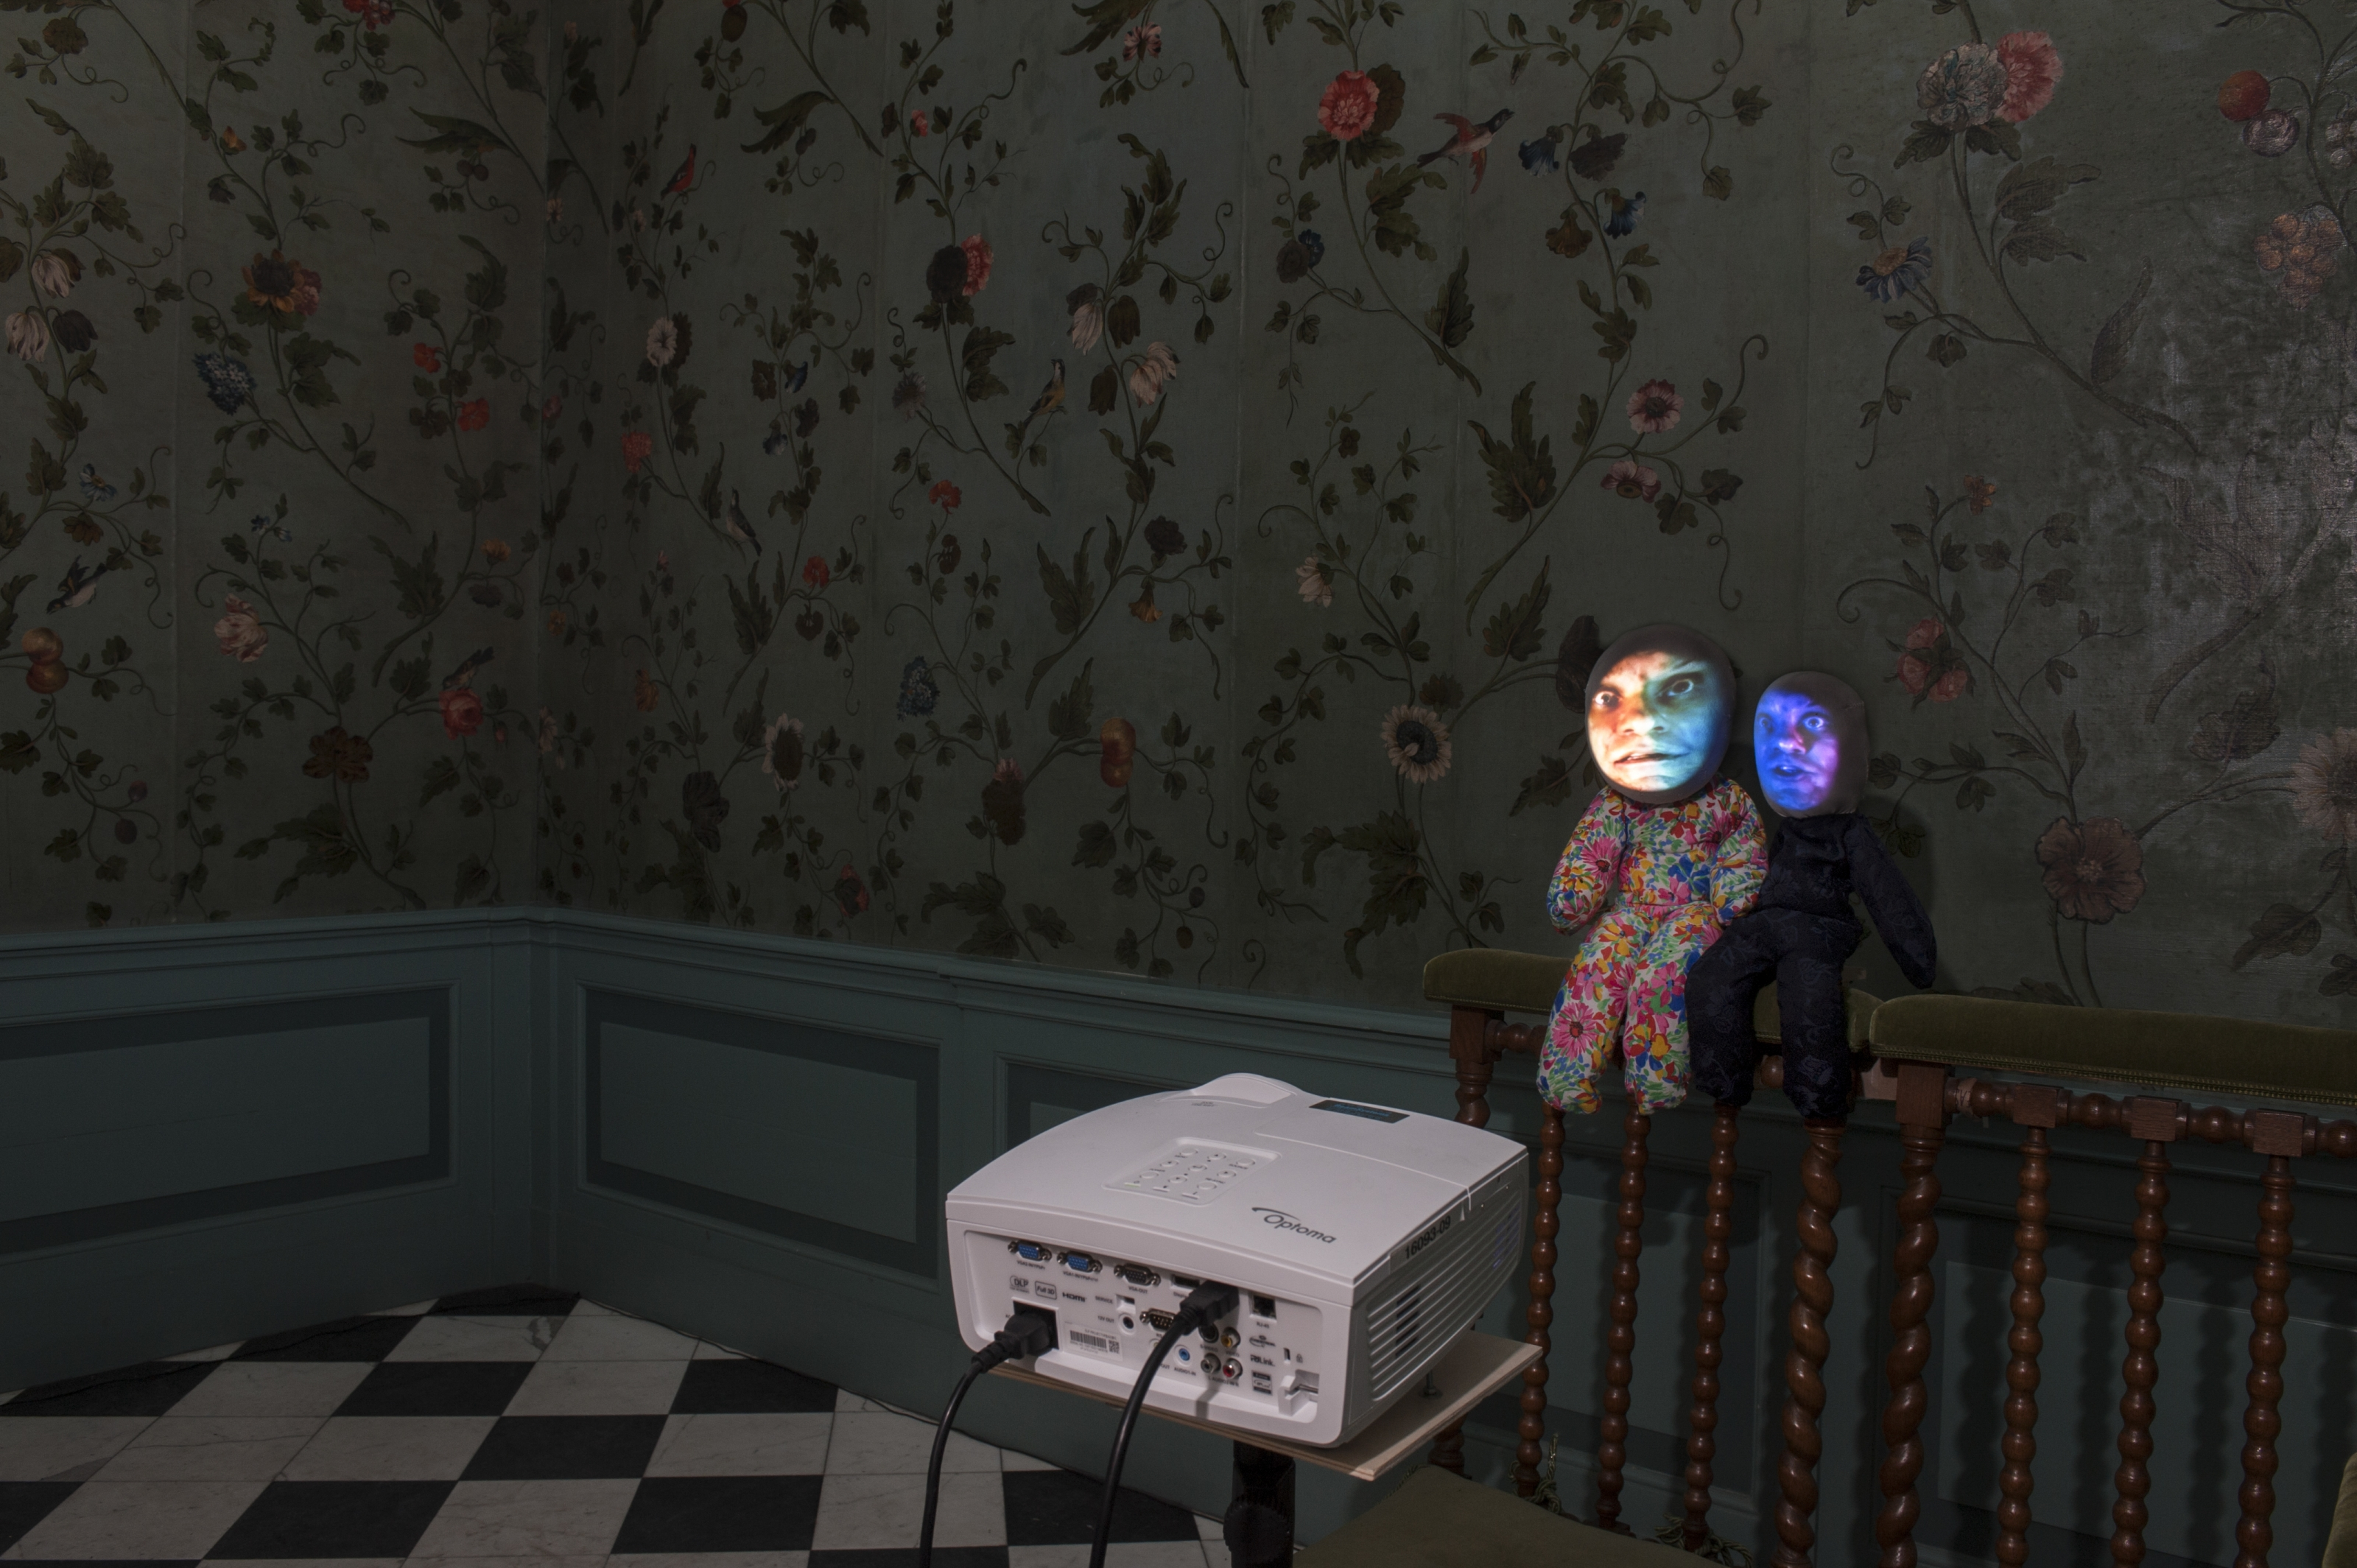 TONY OURSLER, double doll, 2014